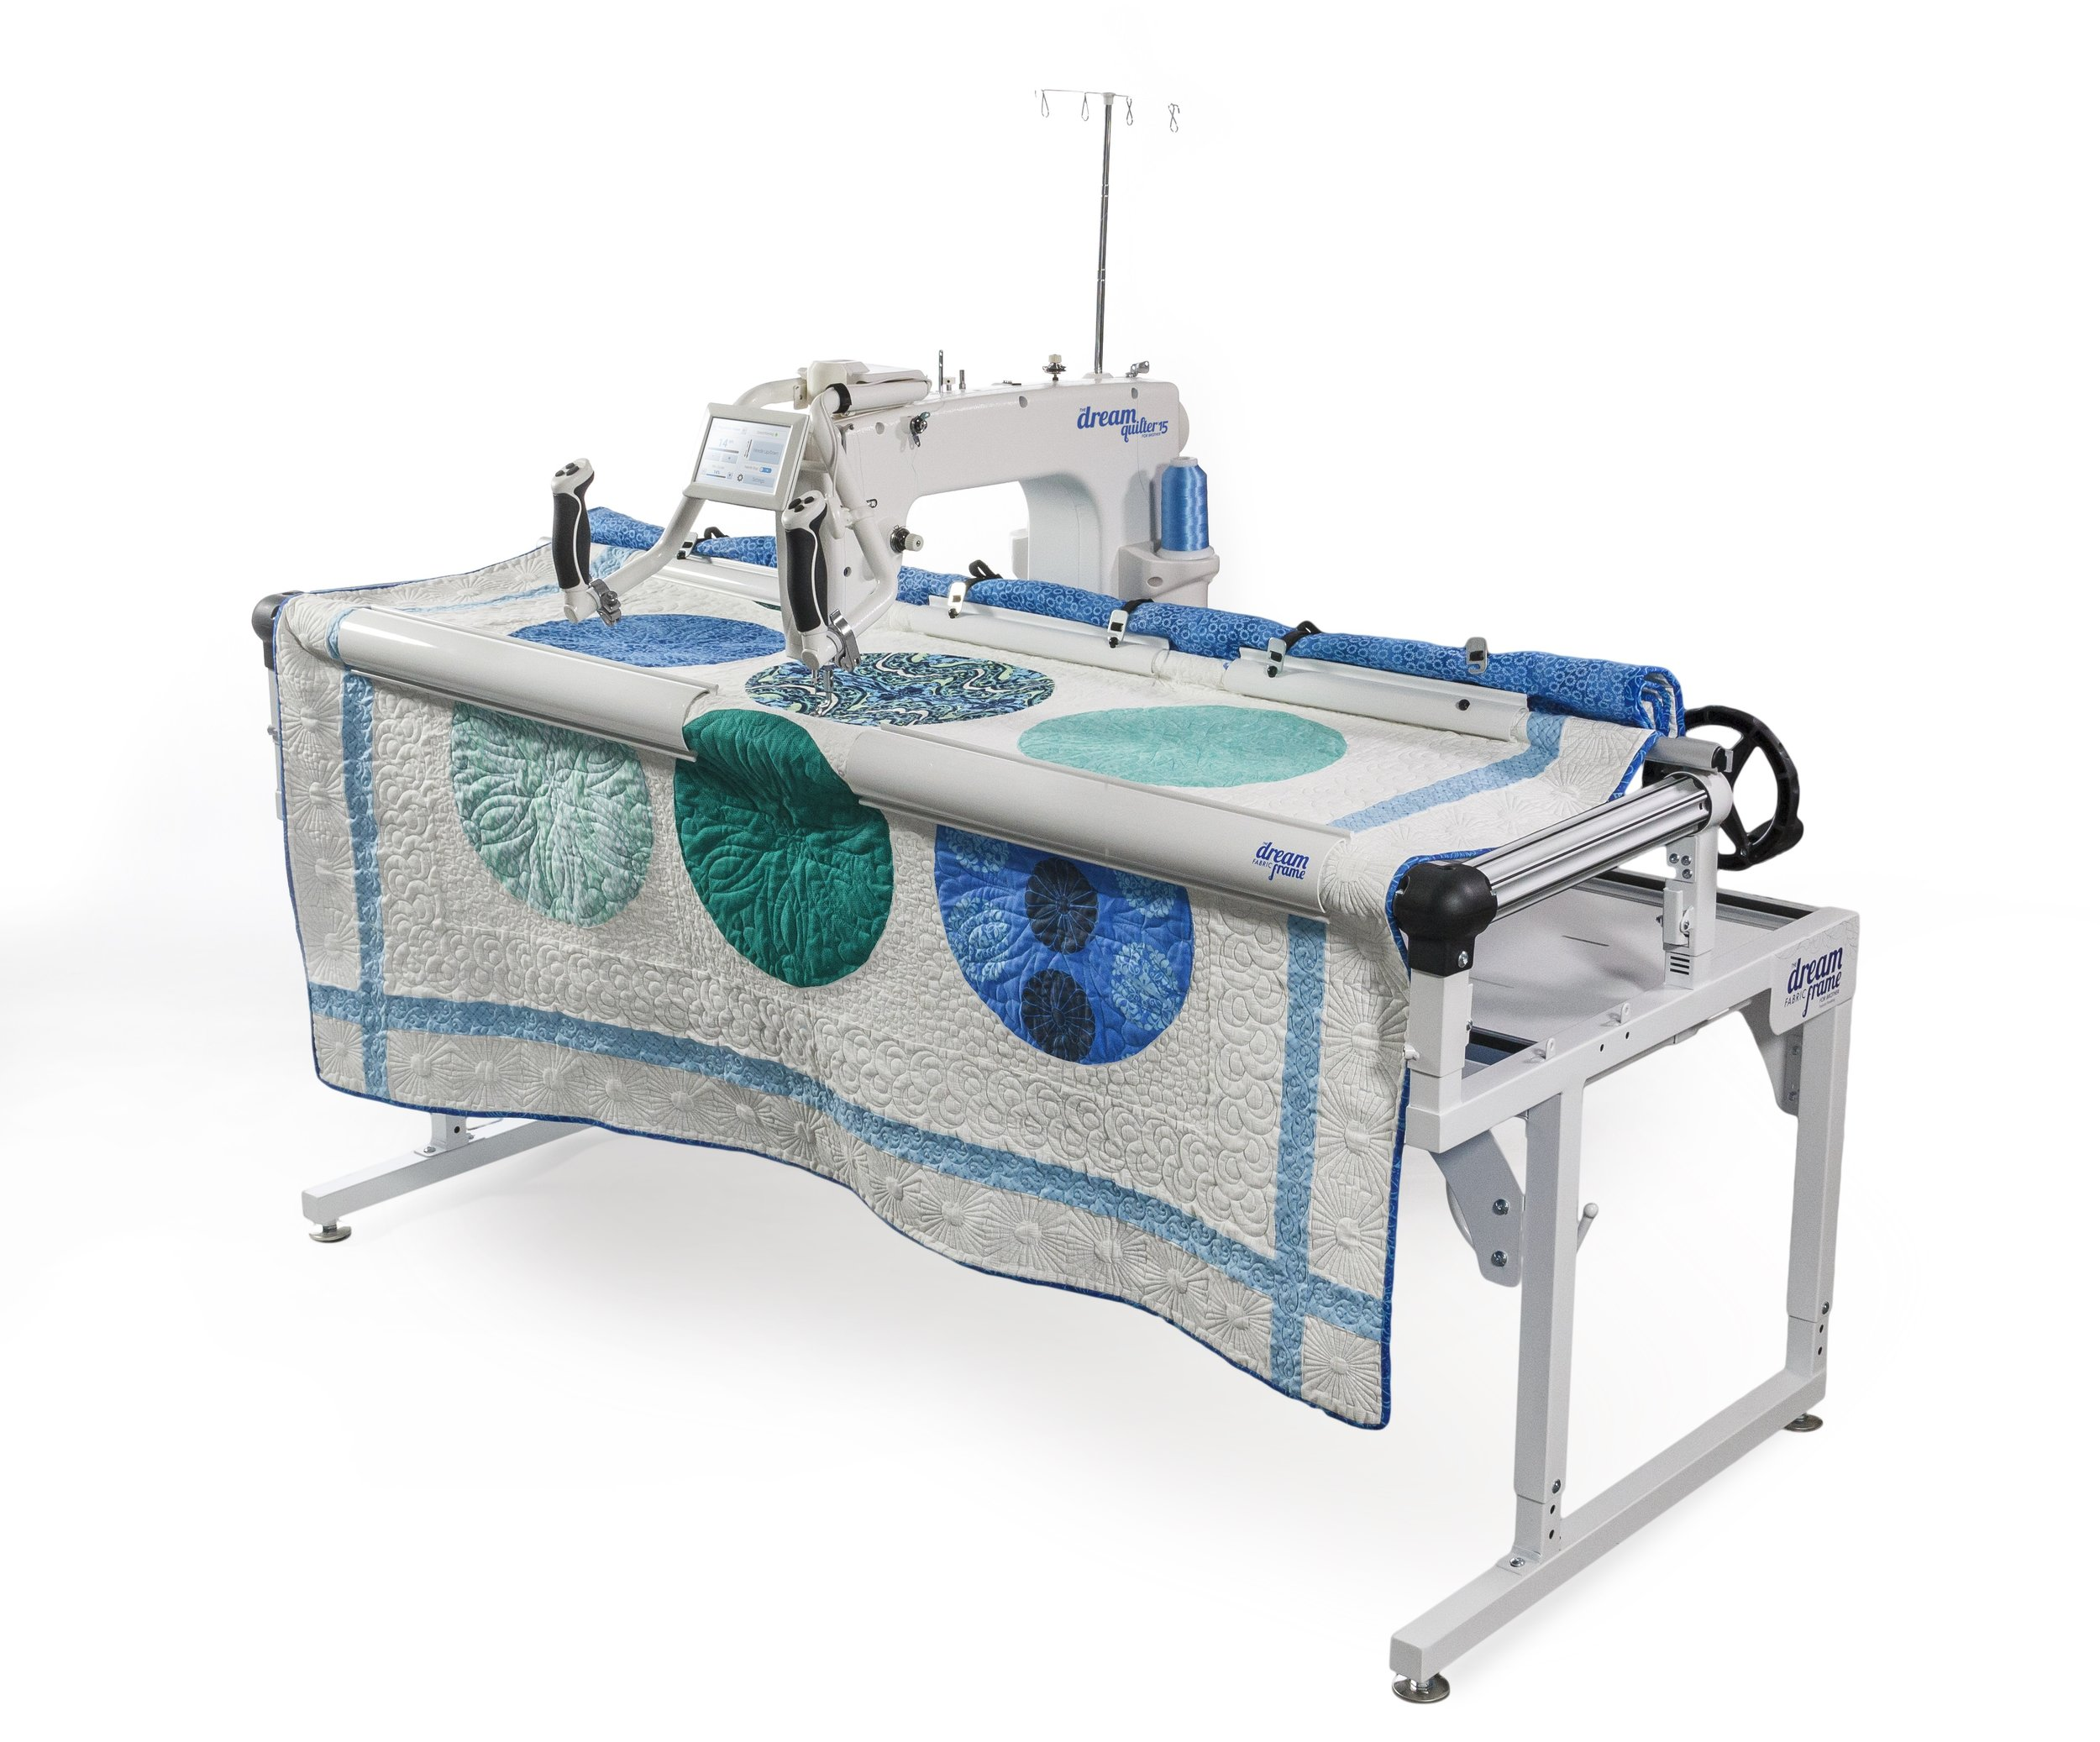 """Brother dream quilter 15 w/dream fabric frame  * 5"""" LCD touch screen  * 15"""" w 8"""" H work space  * laser stylist  * built - in bobbin winder  * built in stitch regulator"""